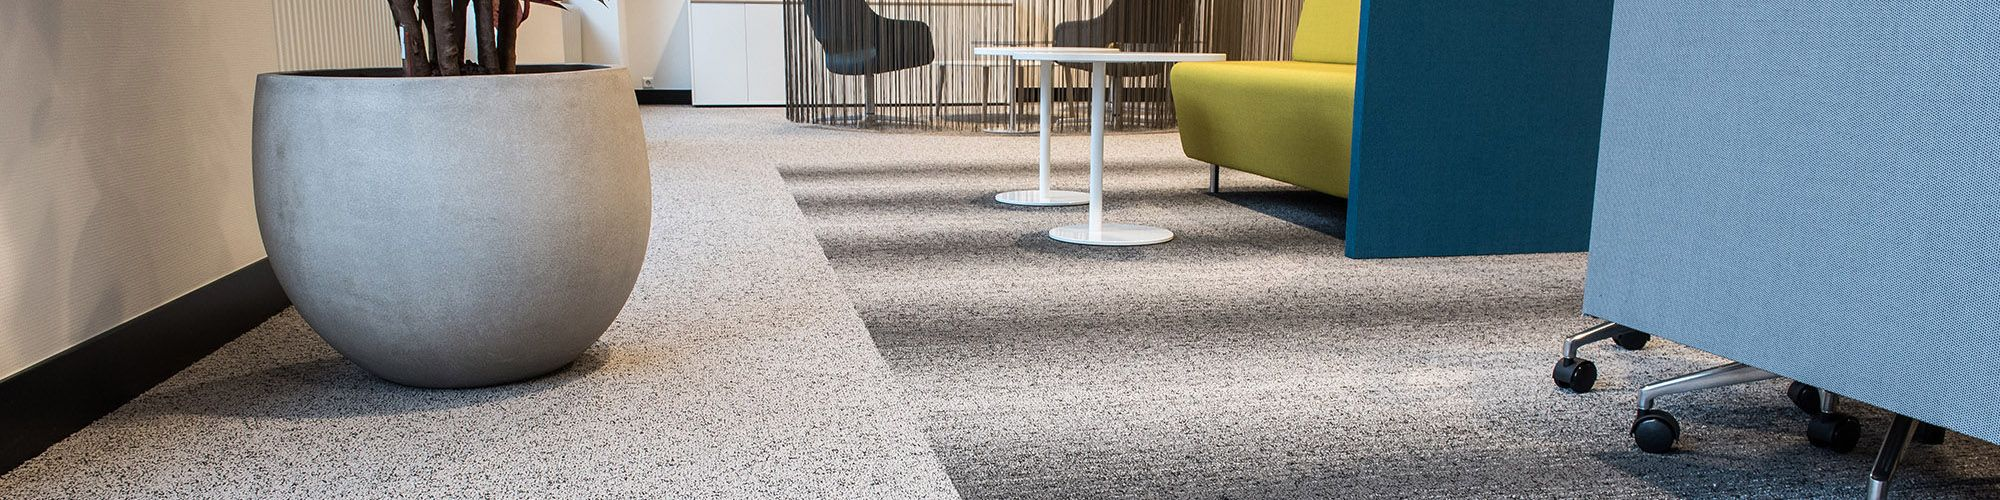 Commerical Flooring